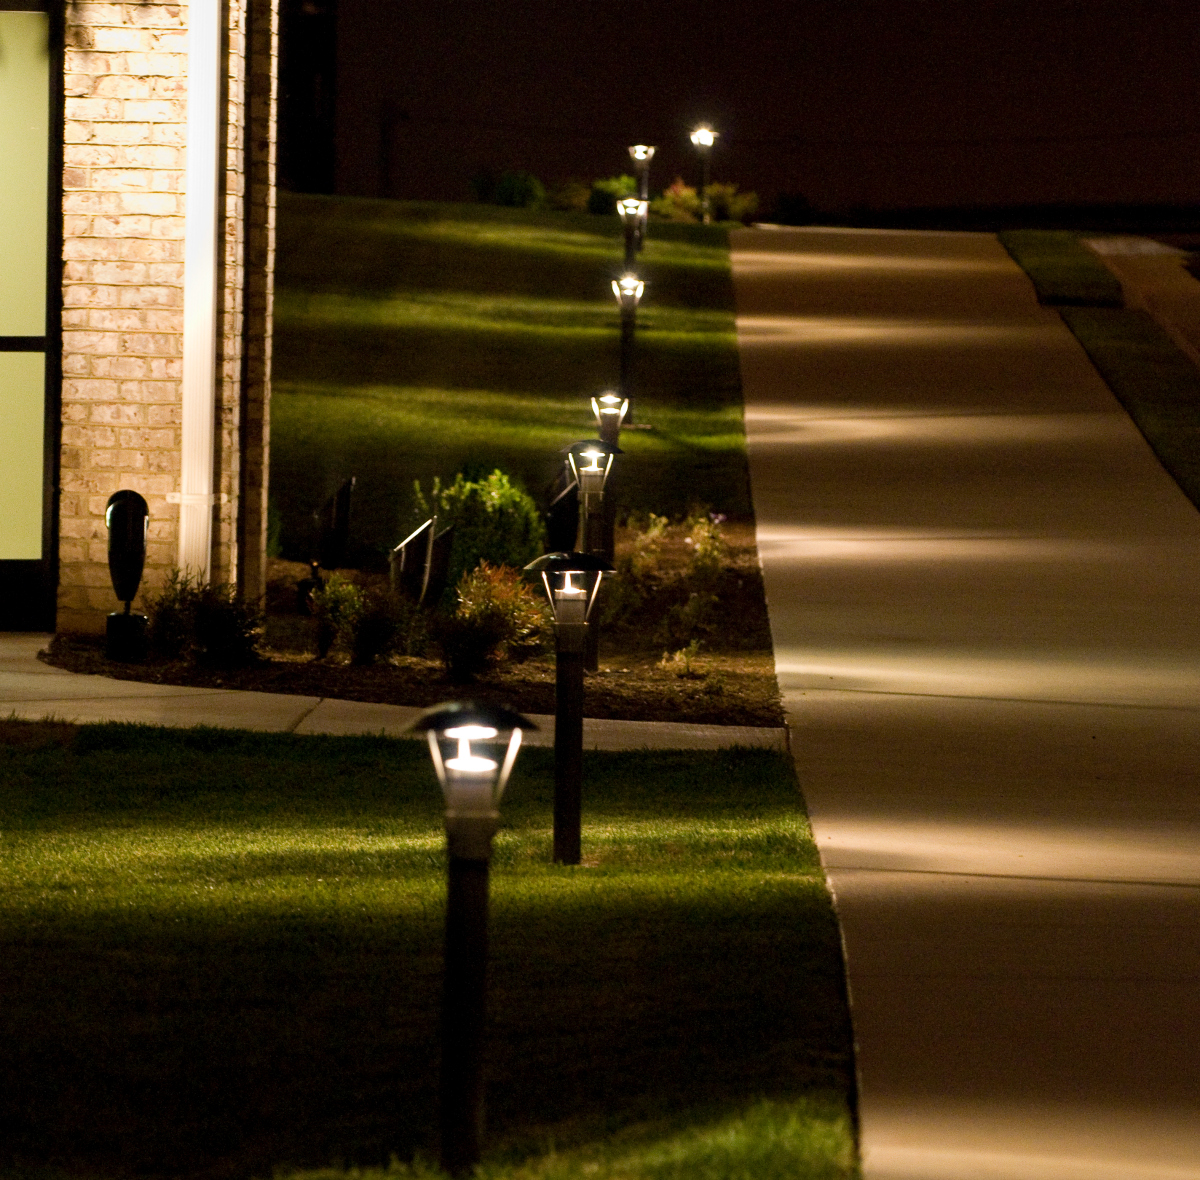 Who knew the path that leads to work could be so beautiful? We used Bollard lights to light this long stretch of path in this commercial environment. They illuminate the path for added safety without overpowering it. The sleek design adds a touch of elegance to an otherwise boring space as well.